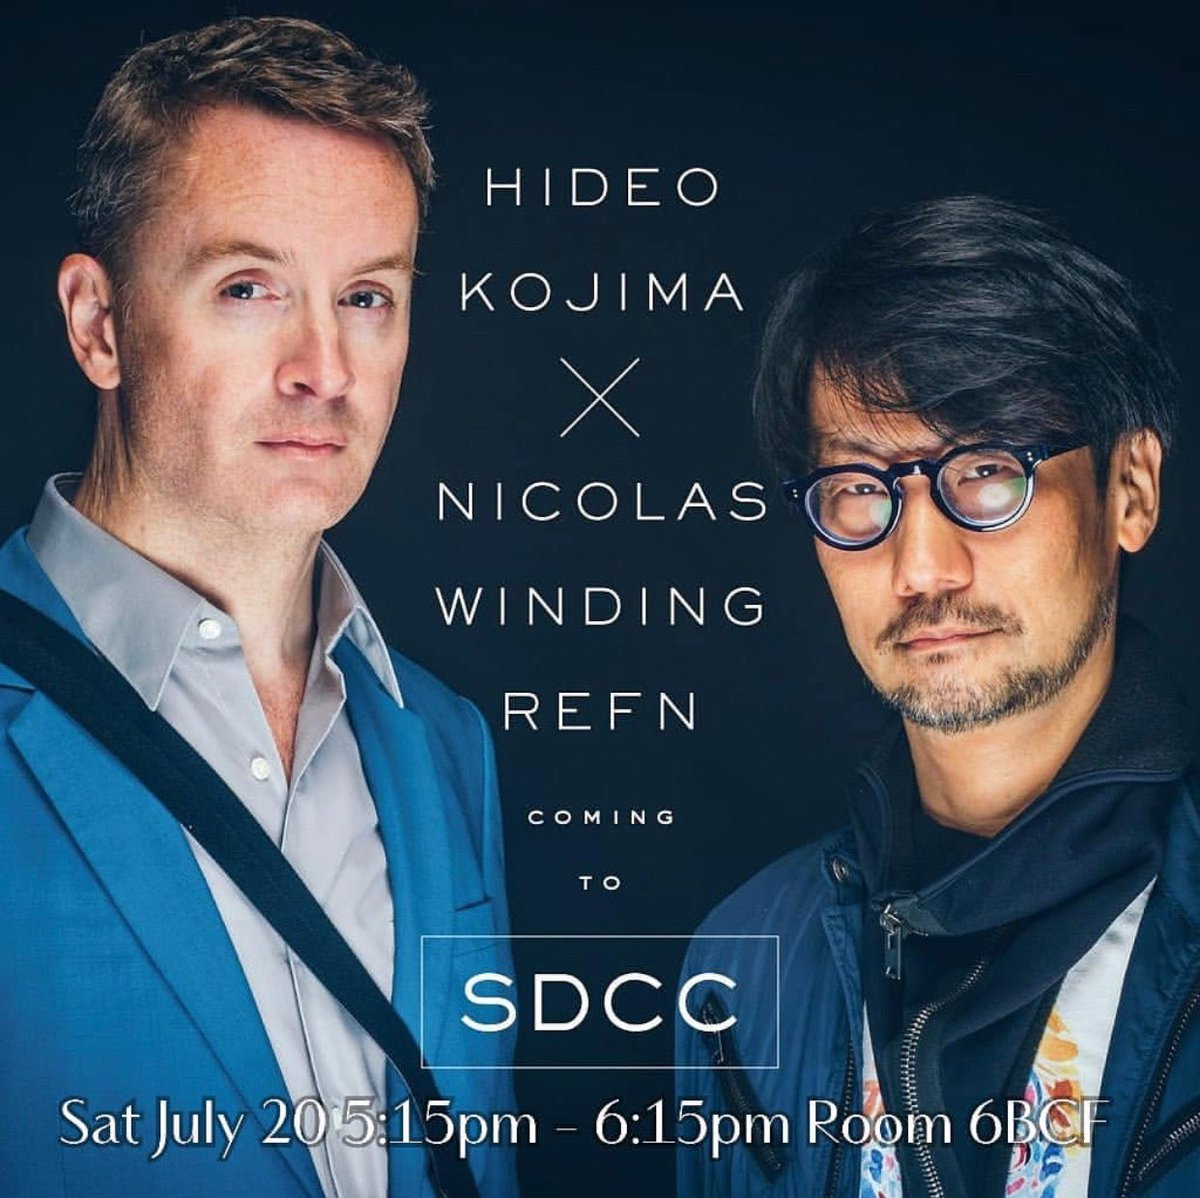 Dear Friends! Looking forward to seeing everyone and hanging with @HIDEO_KOJIMA_EN #SDCC #byNWR ❤️ https://t.co/PpwMtaeKTn